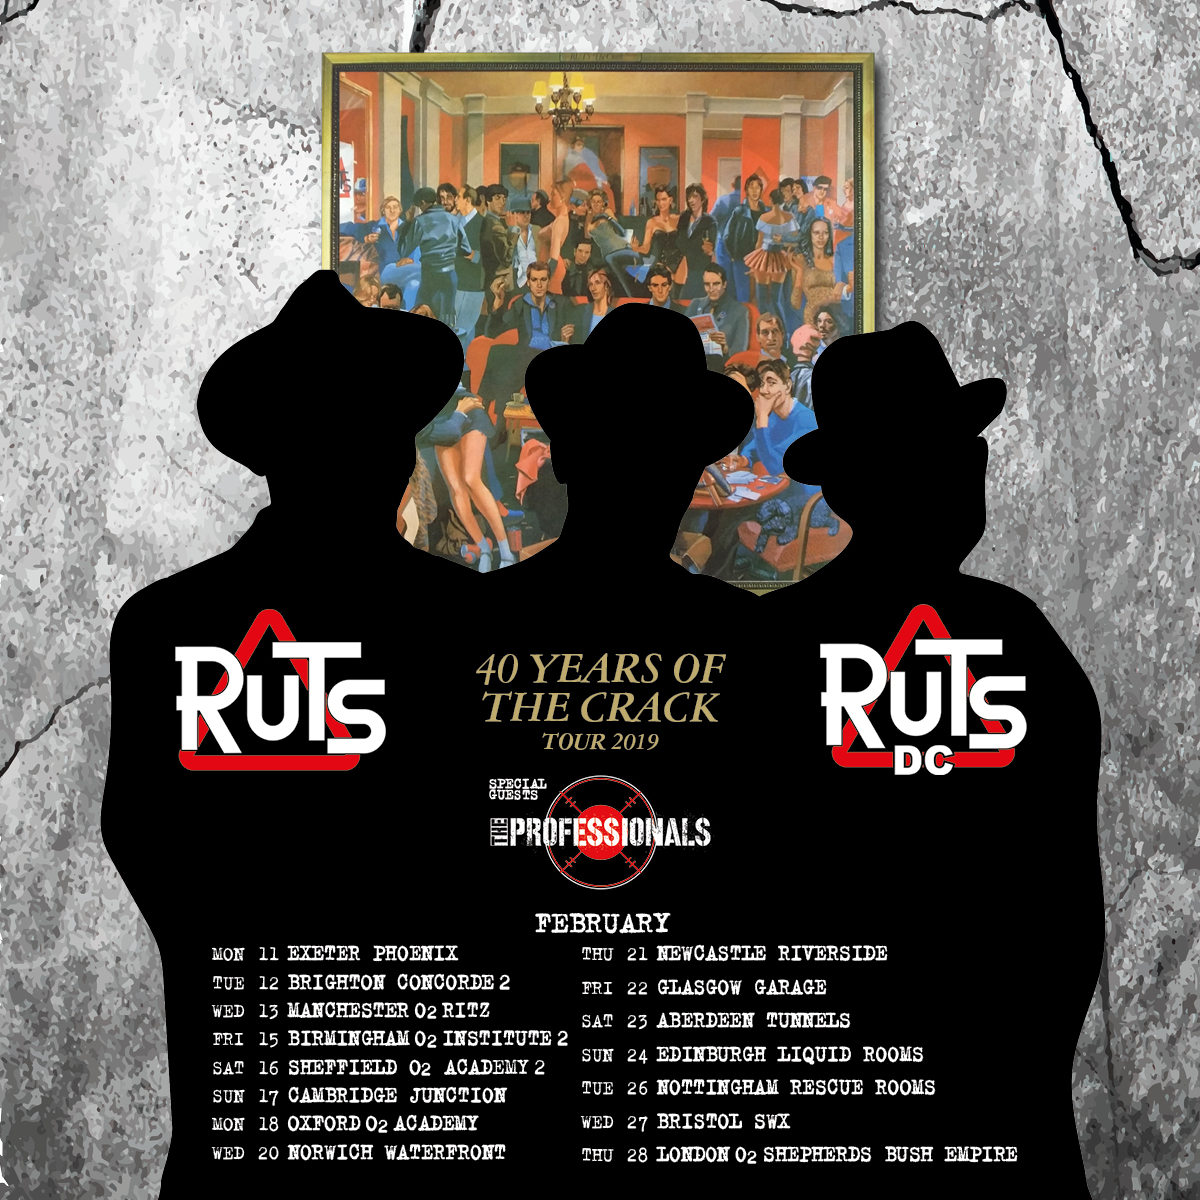 Ruts DC announce 40th anniversary of 'The Crack' tour Feb 2019